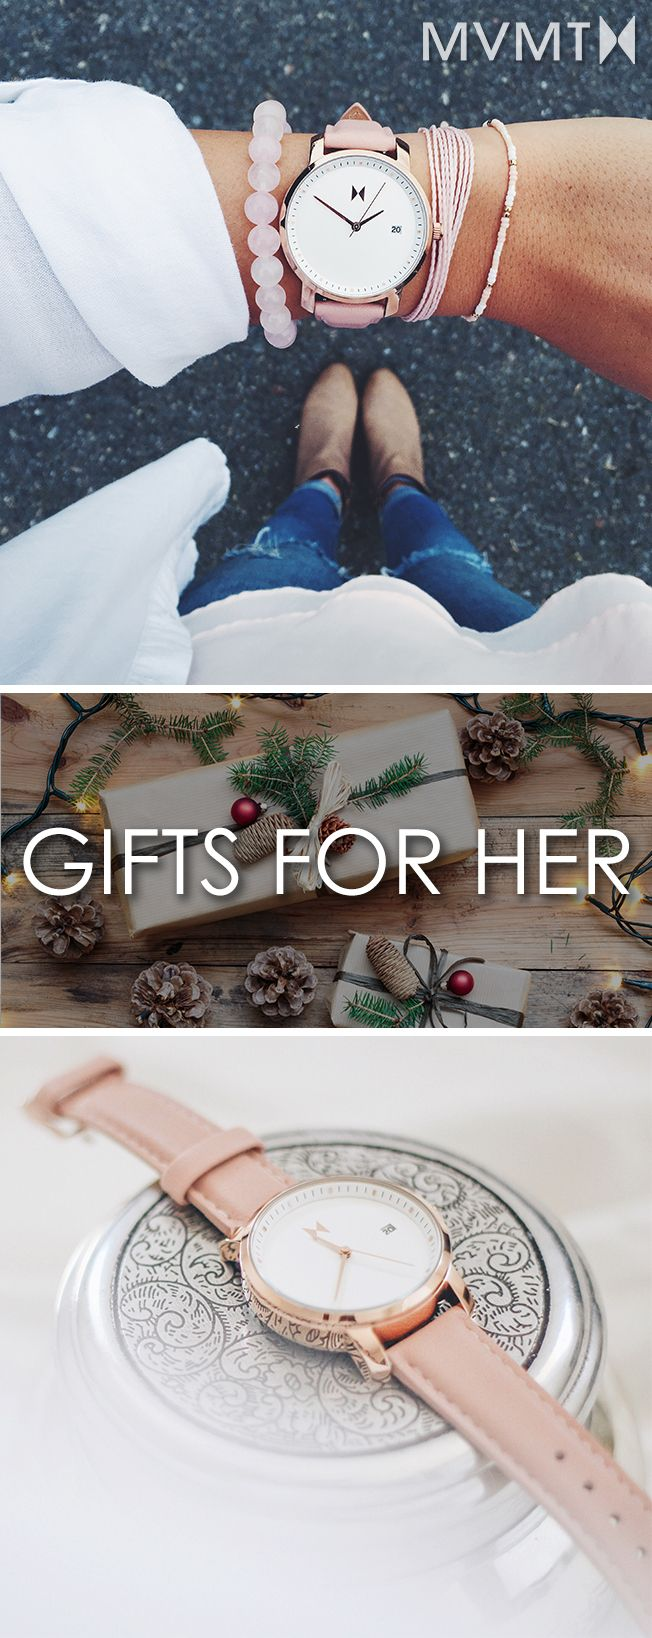 Get a gift for her this holiday season! We believe style should be inspired by creative spirit and the freedom to express yourself. The MVMT Watches initiative is to offer classic minimalist designs with a twist of elegant chic flavor, all at a revolutionary price. This watch would make a great addition to your accessory collection. Let your style make a statement! Click the buy button to get it now!